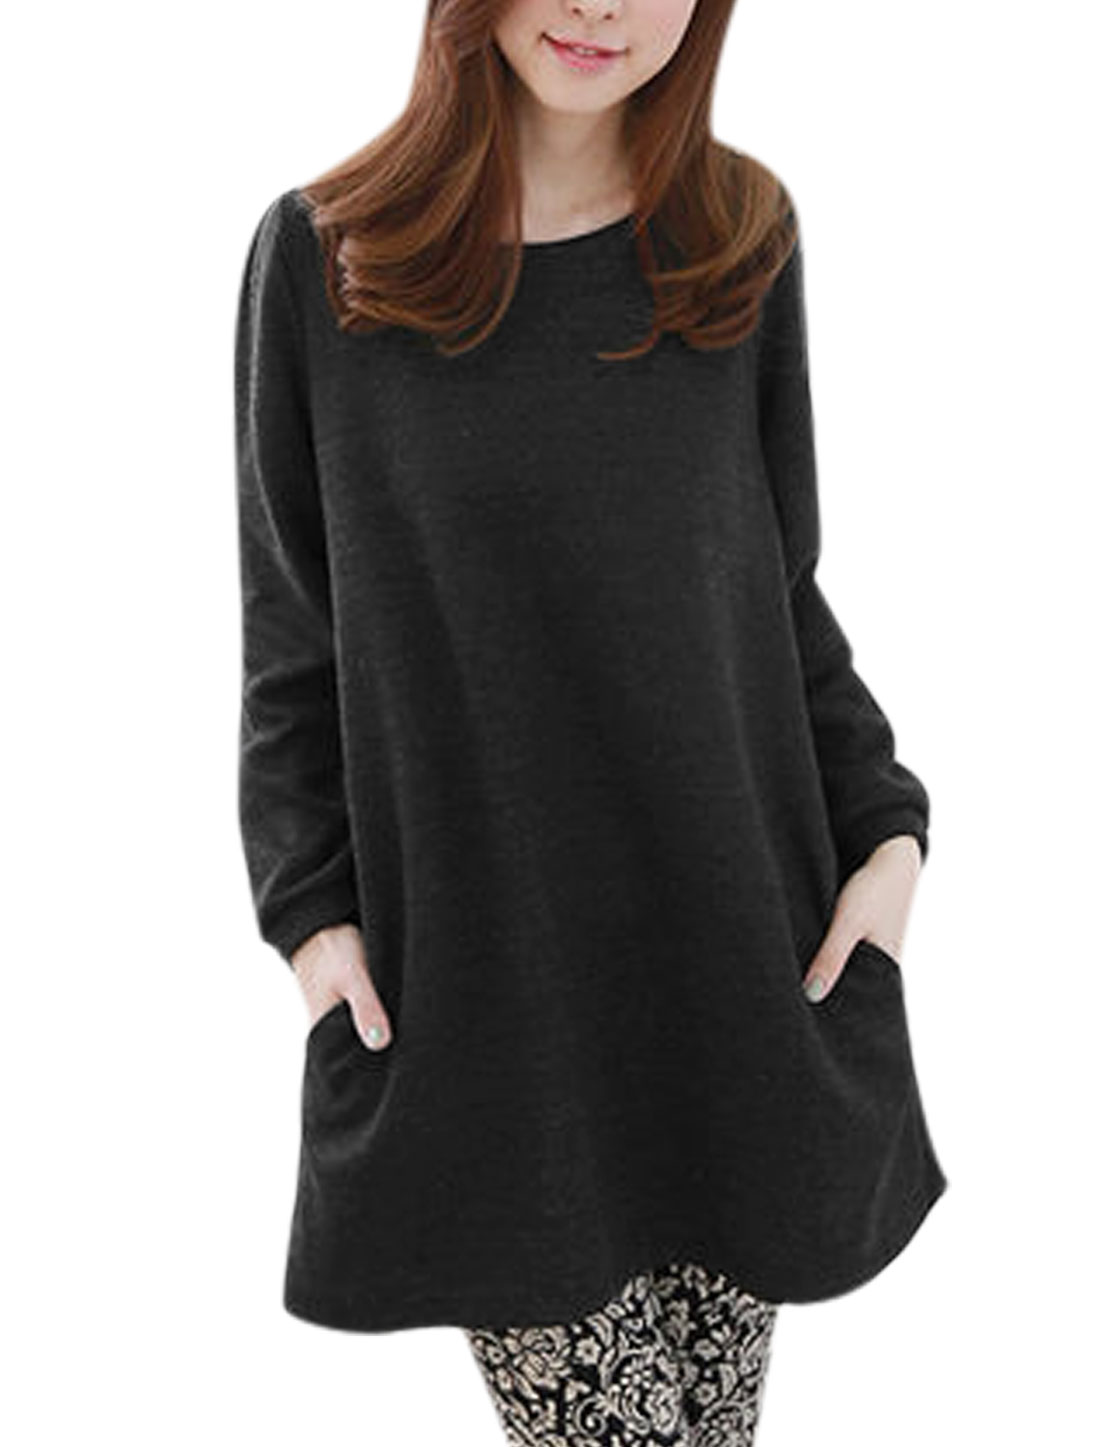 Long Sleeves Bowknot Decor Back Trendy Tunic Blouse for Women Black XS